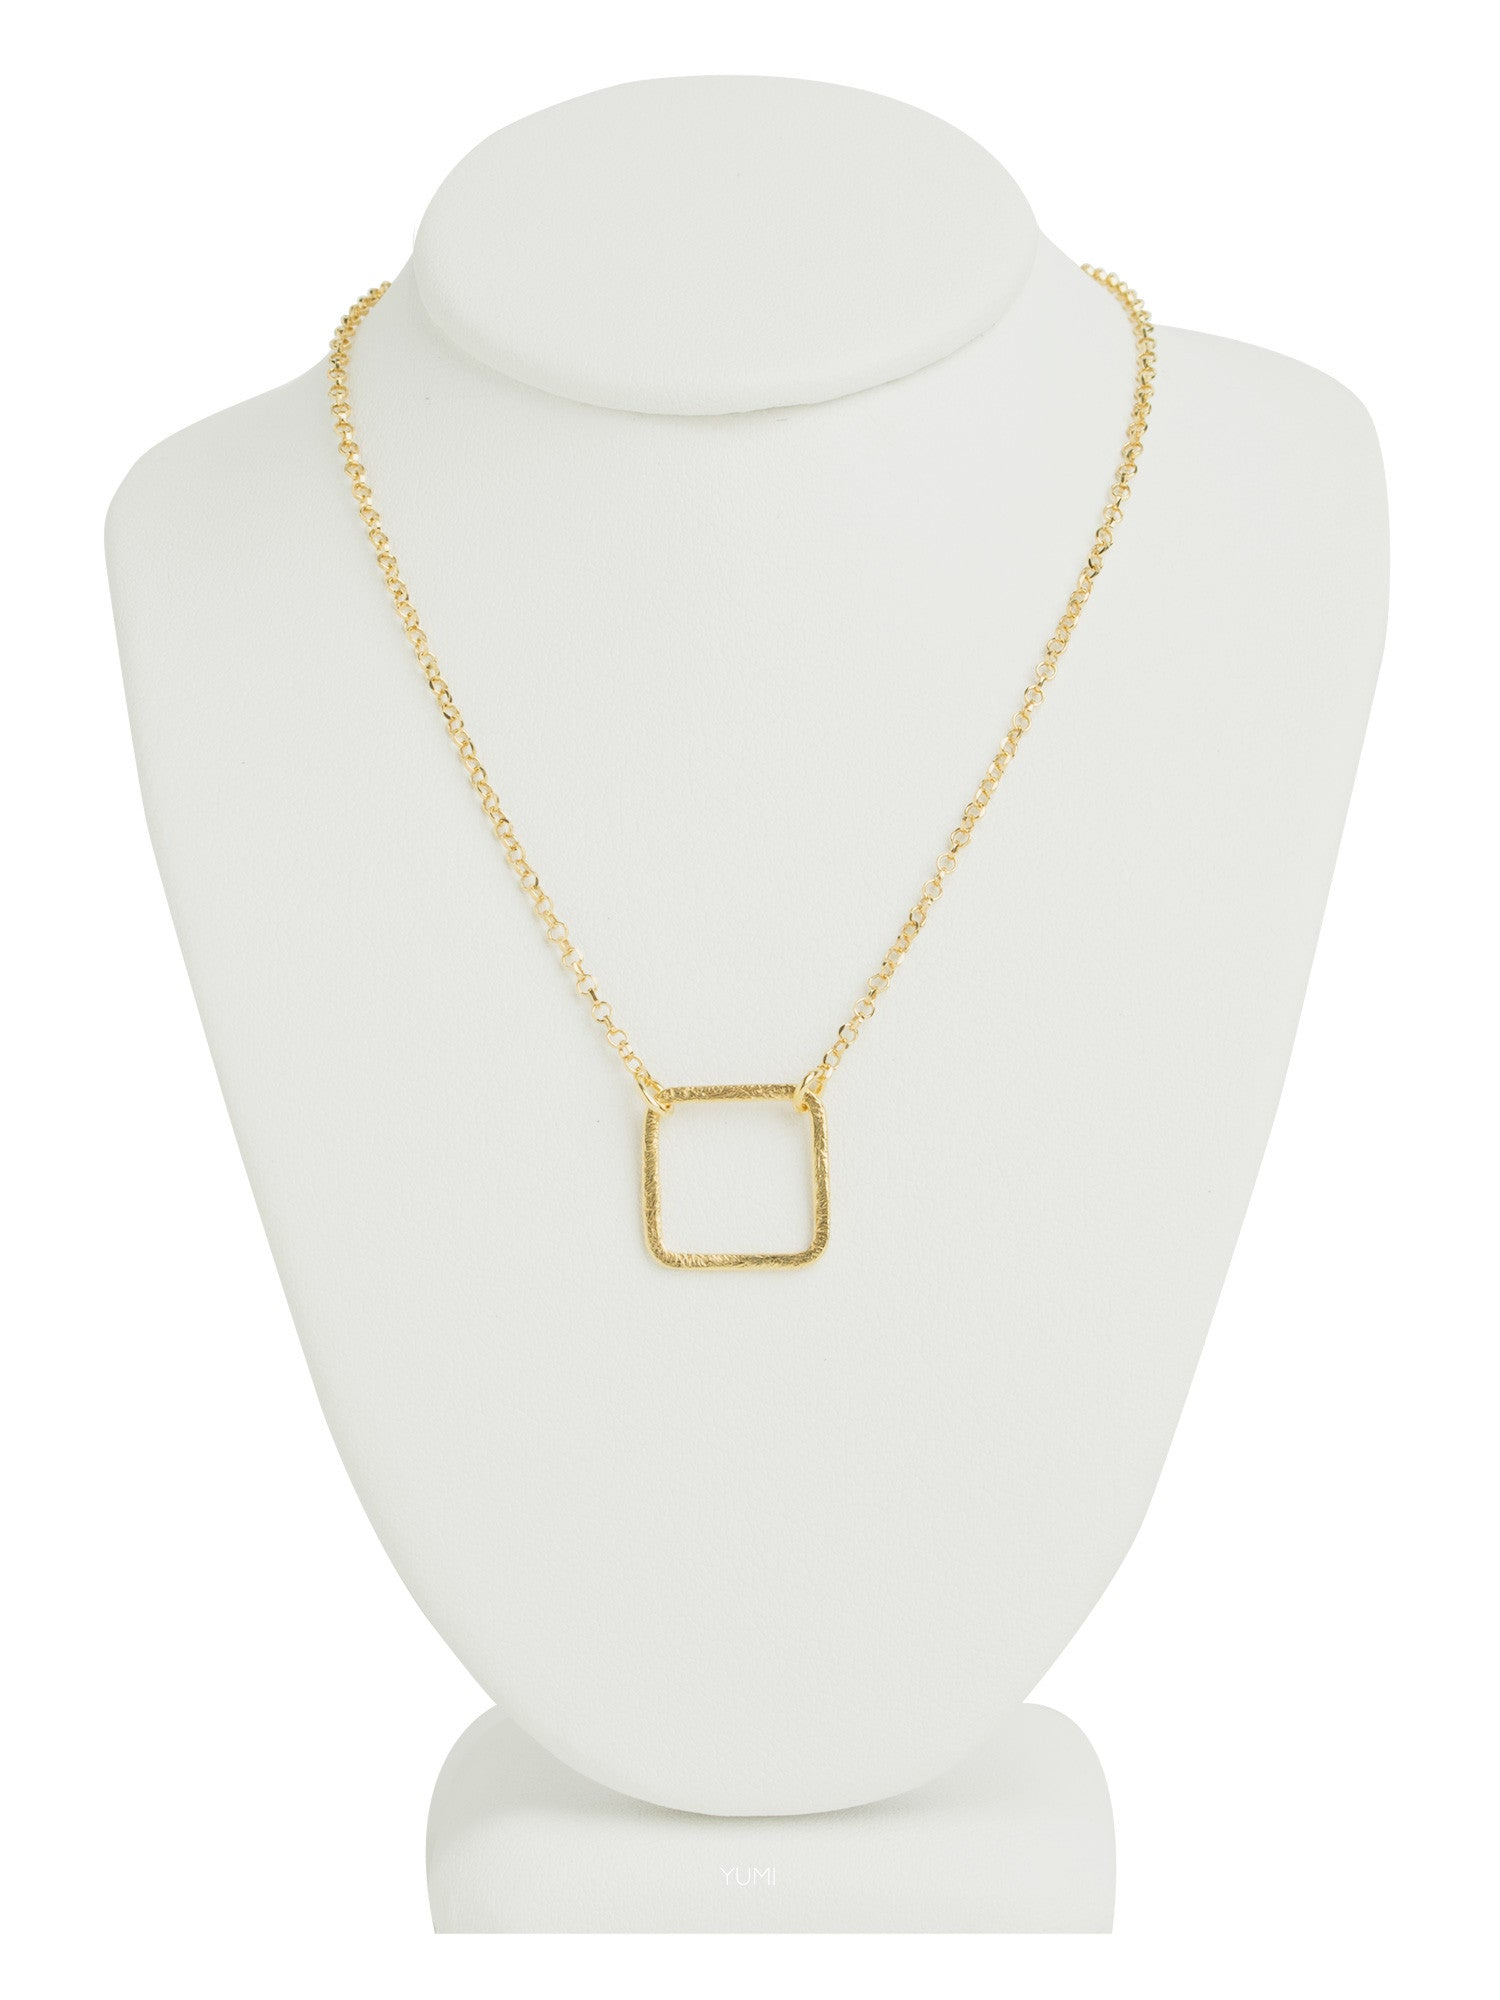 necklace gold white fischer rose agate square wasqchrd product evans ln